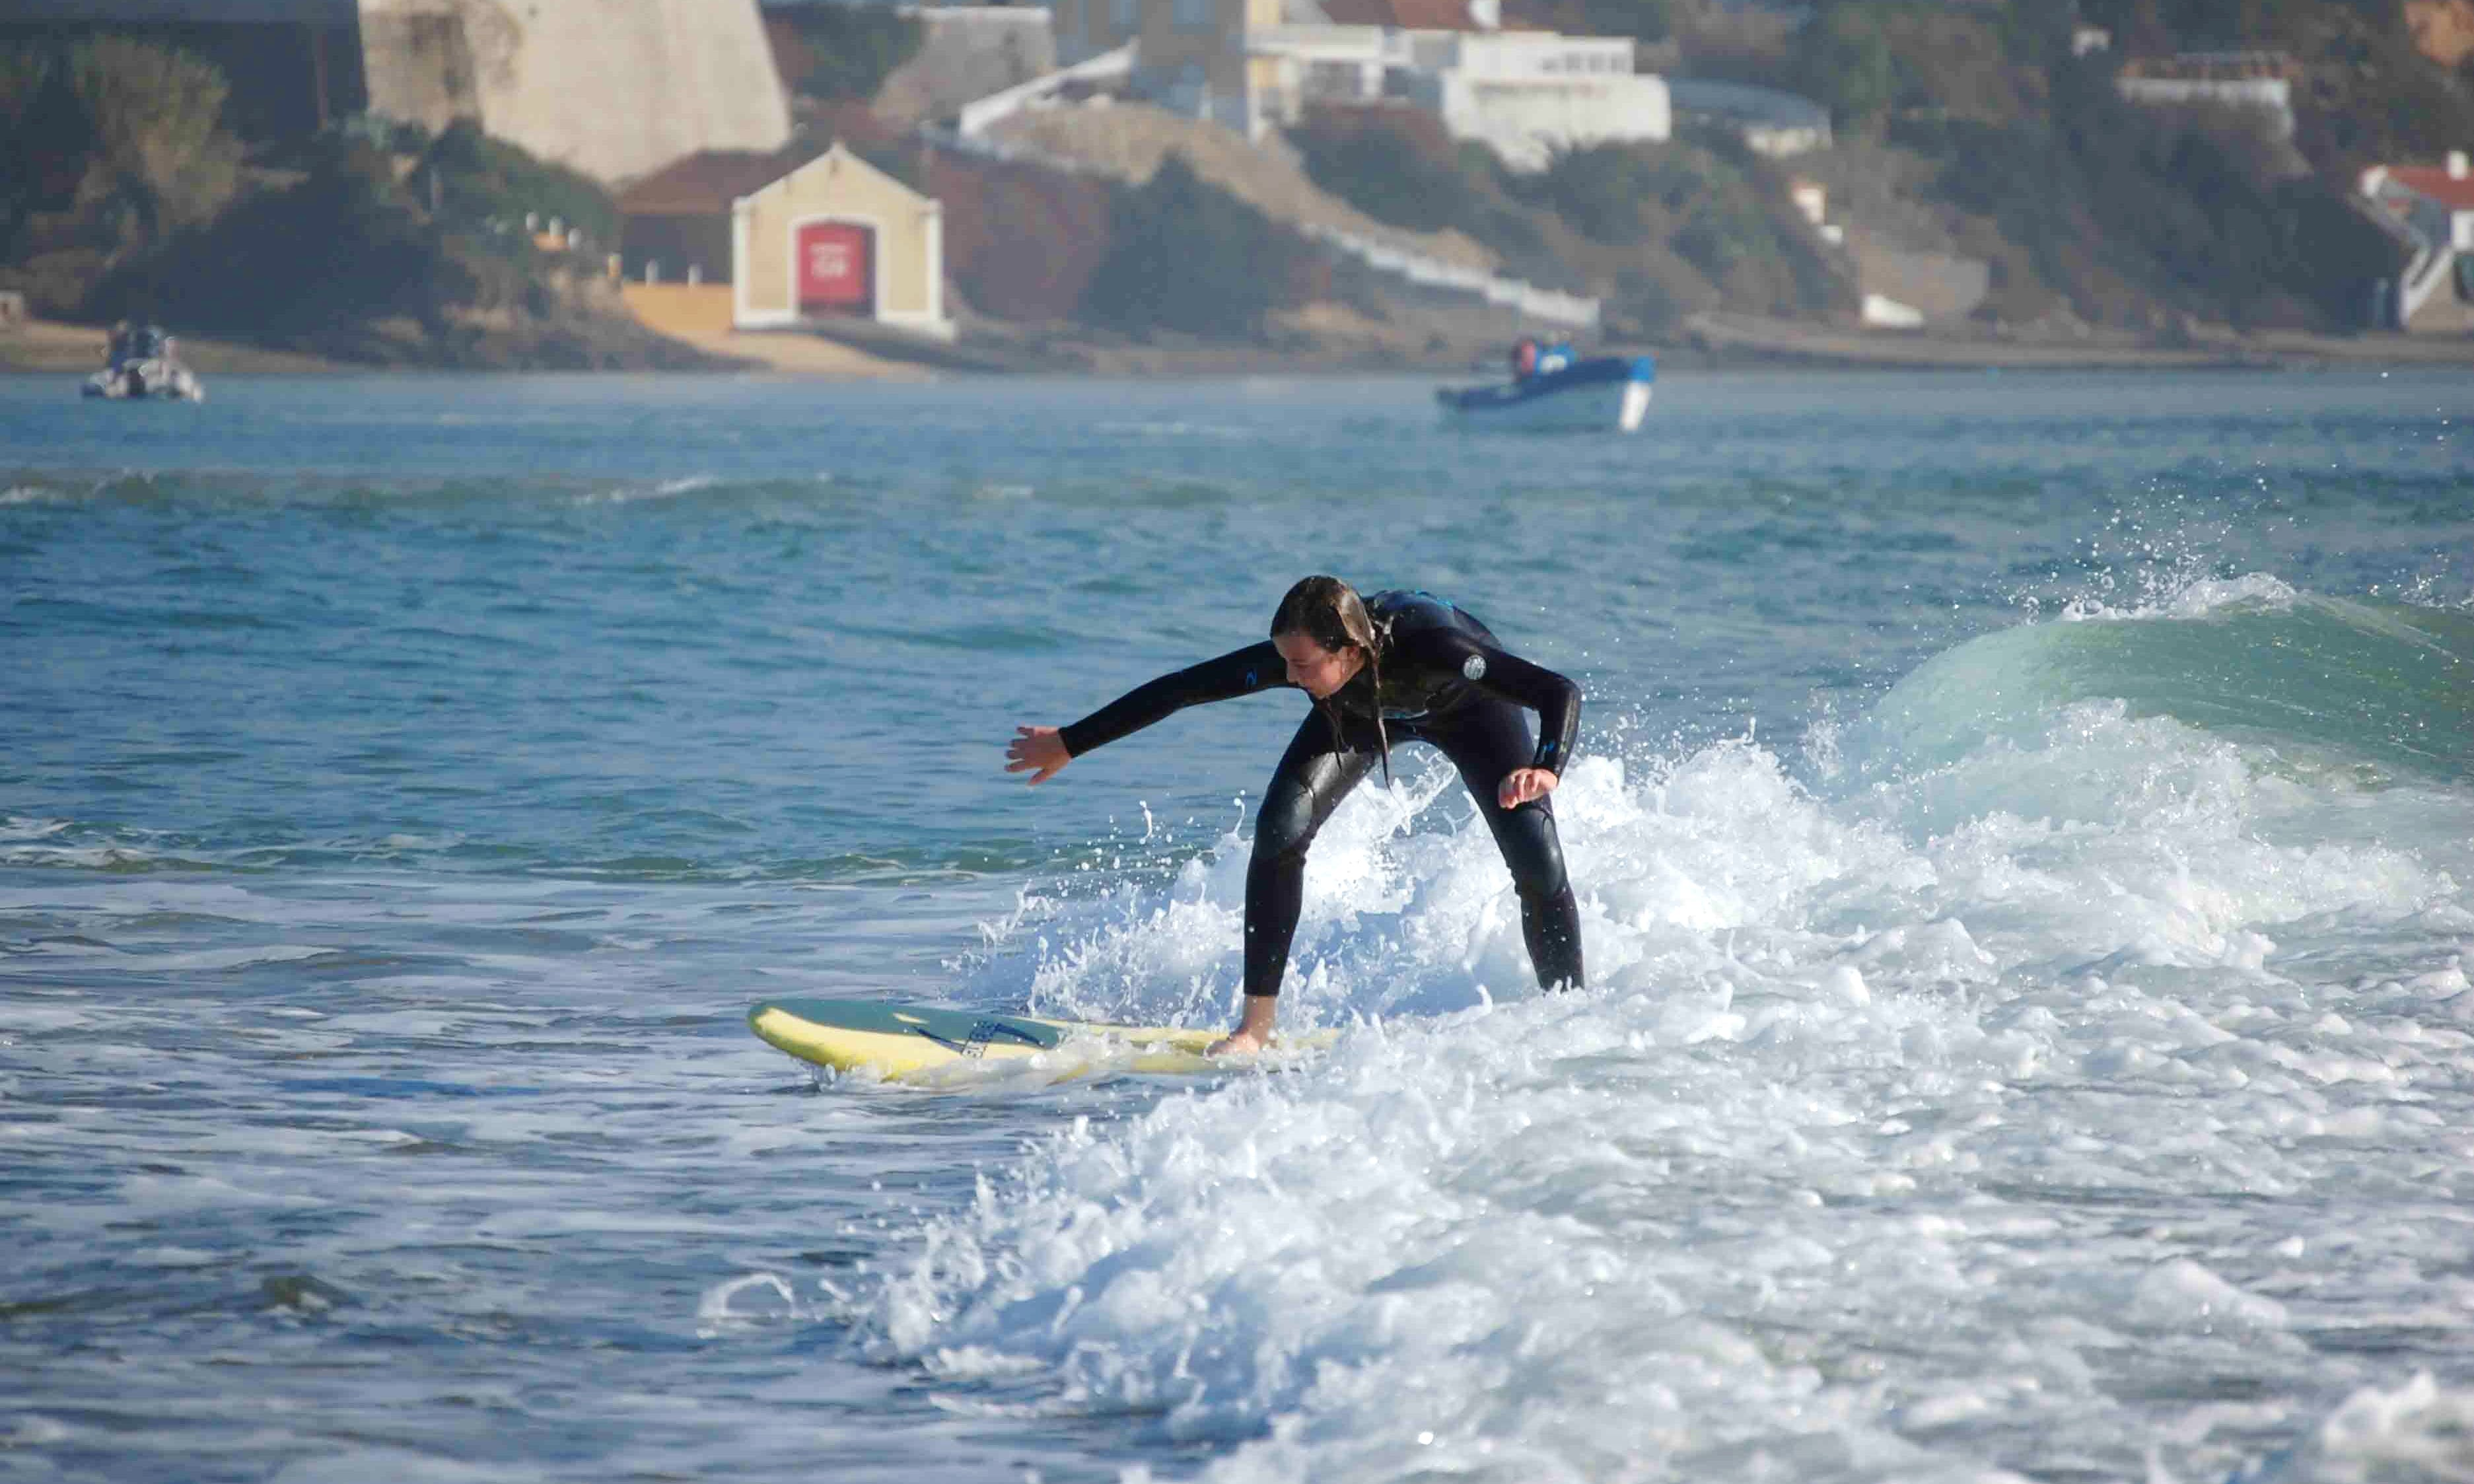 Learn to Surf - Vila Nova de Milfontes, Portugal